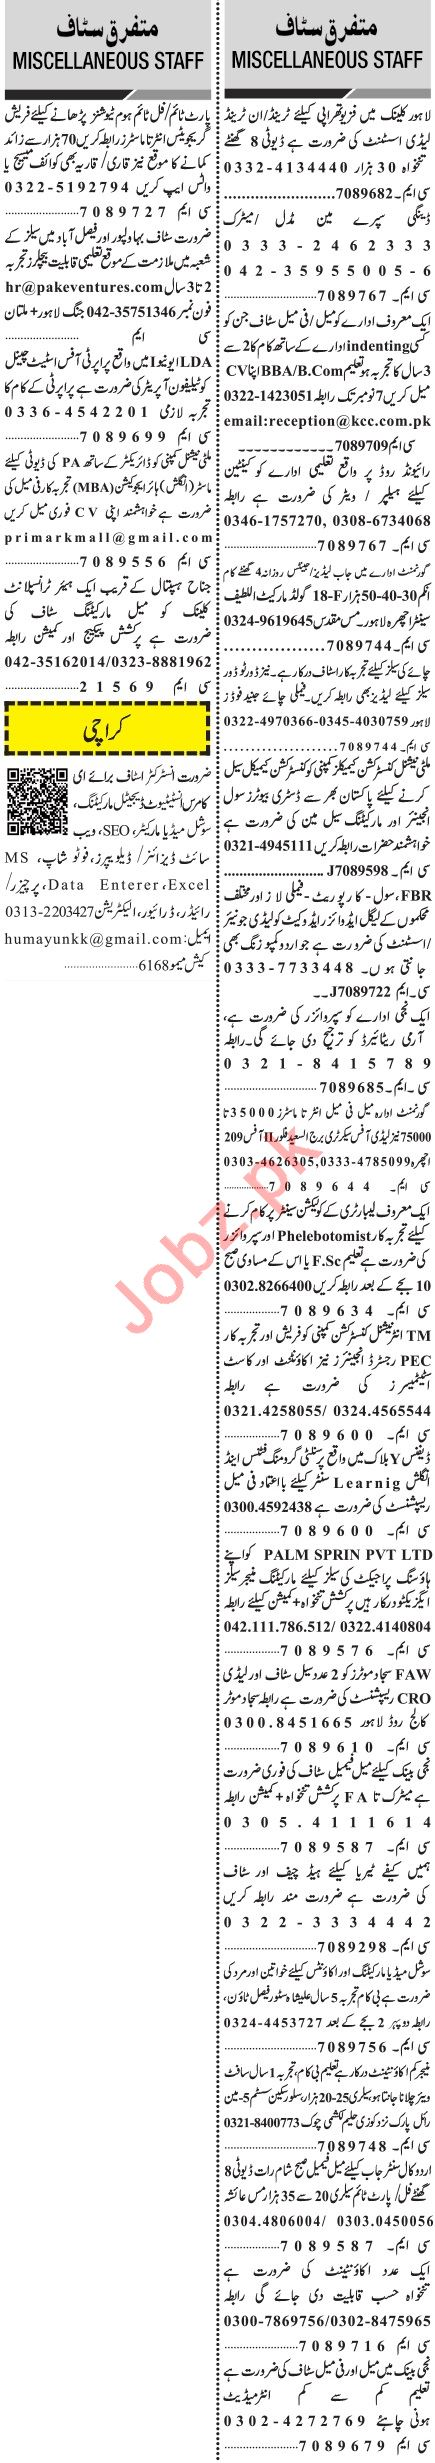 Jang Sunday Classified Ads 1st Nov 2020 for Management Staff